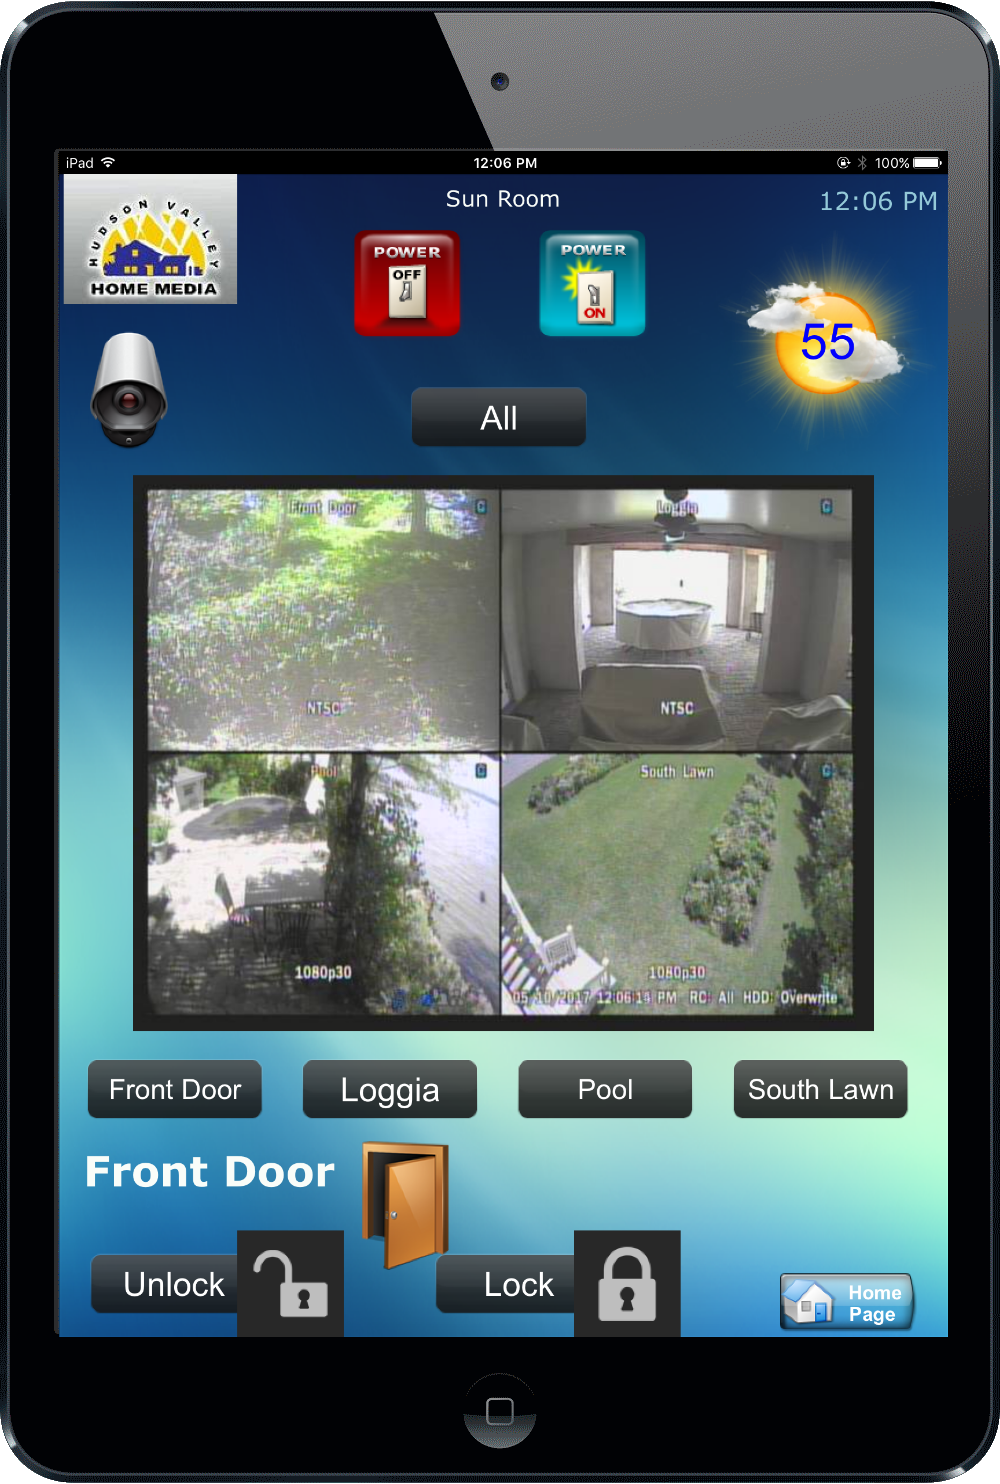 Smart Security Cameras HV Home Media Smart Home Monitoring Installation